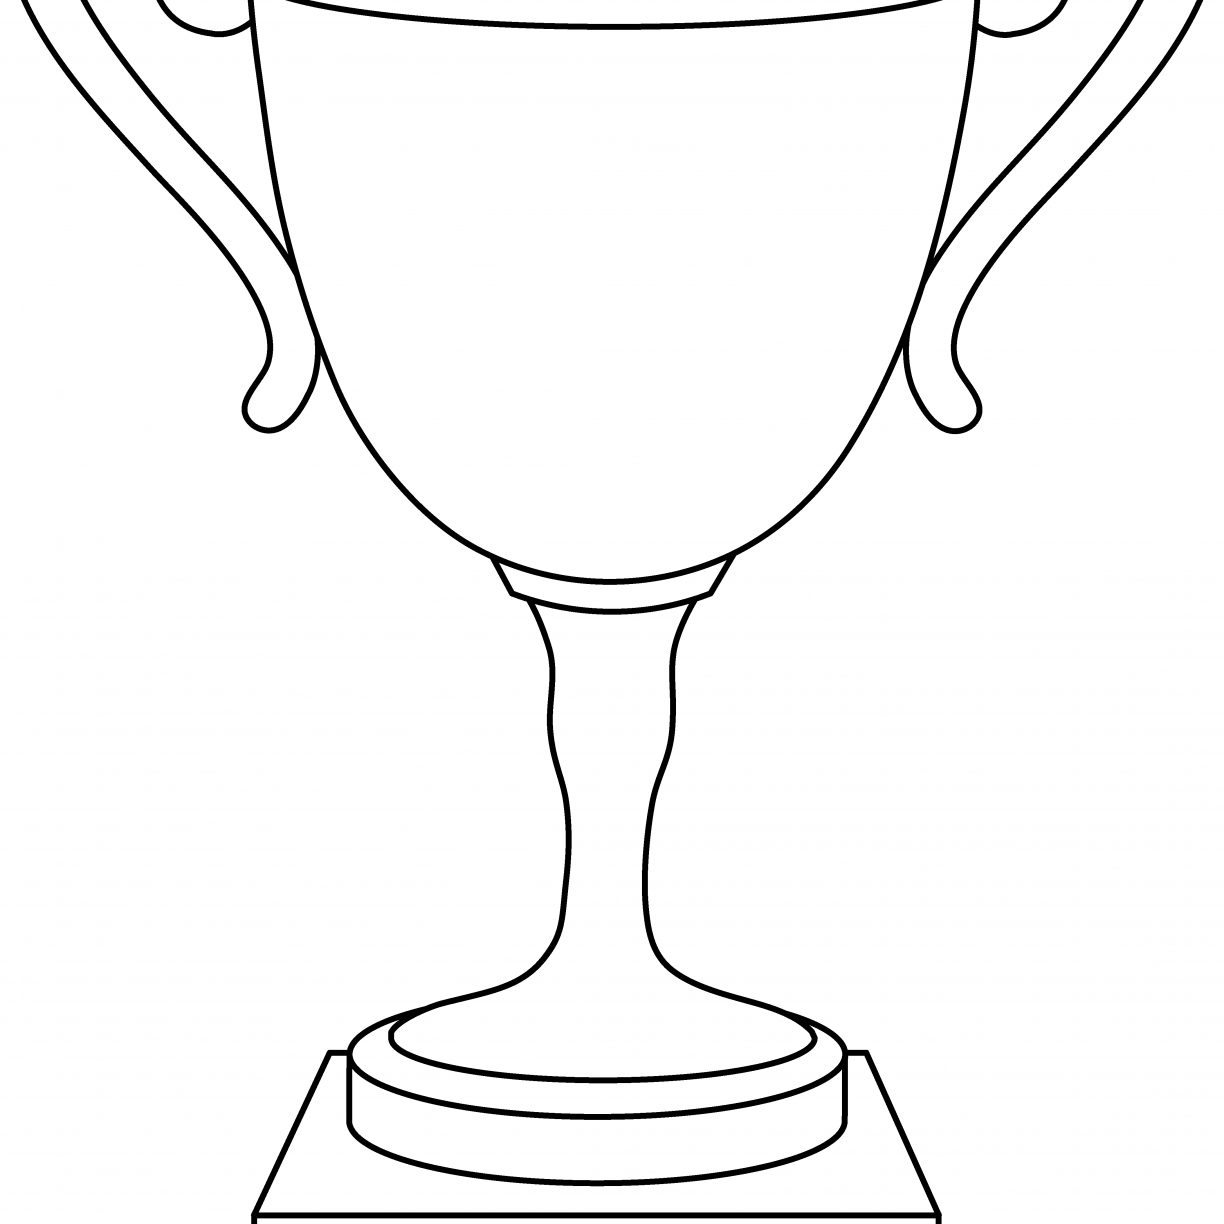 Football Goal Post Coloring Pages At Getcolorings